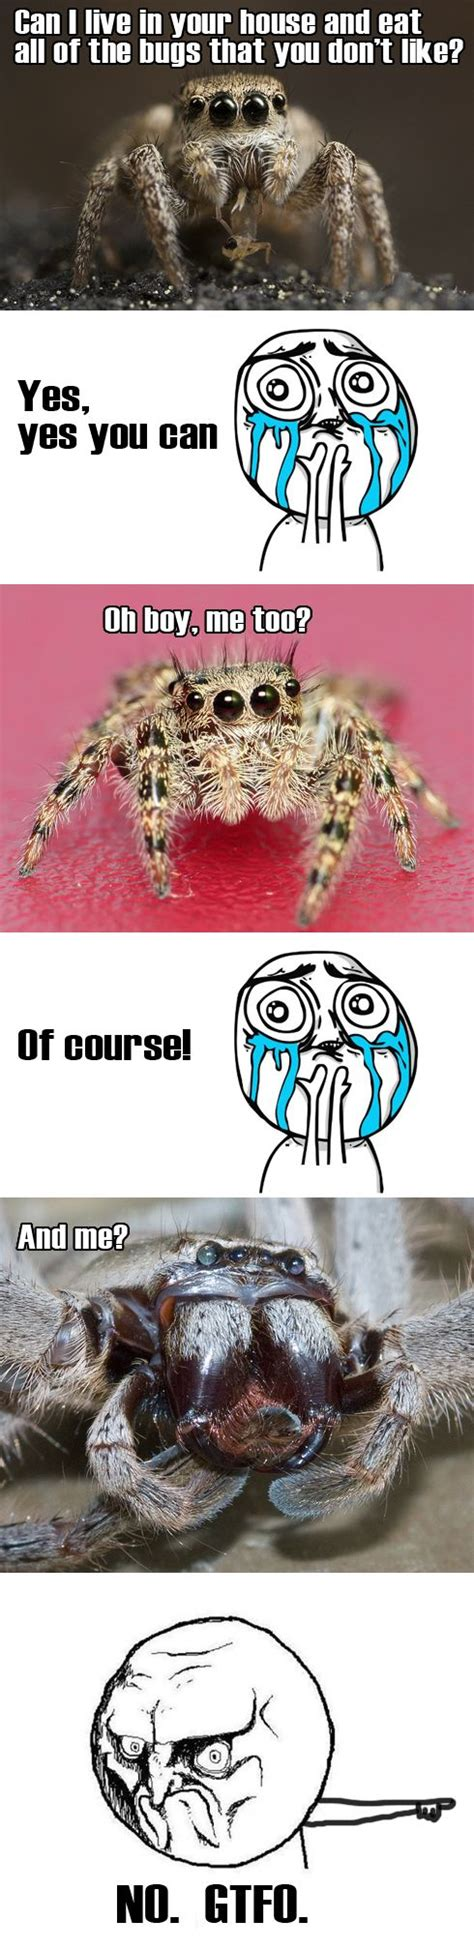 Cute Spider Memes - 52 best images about spiders on pinterest game of ants